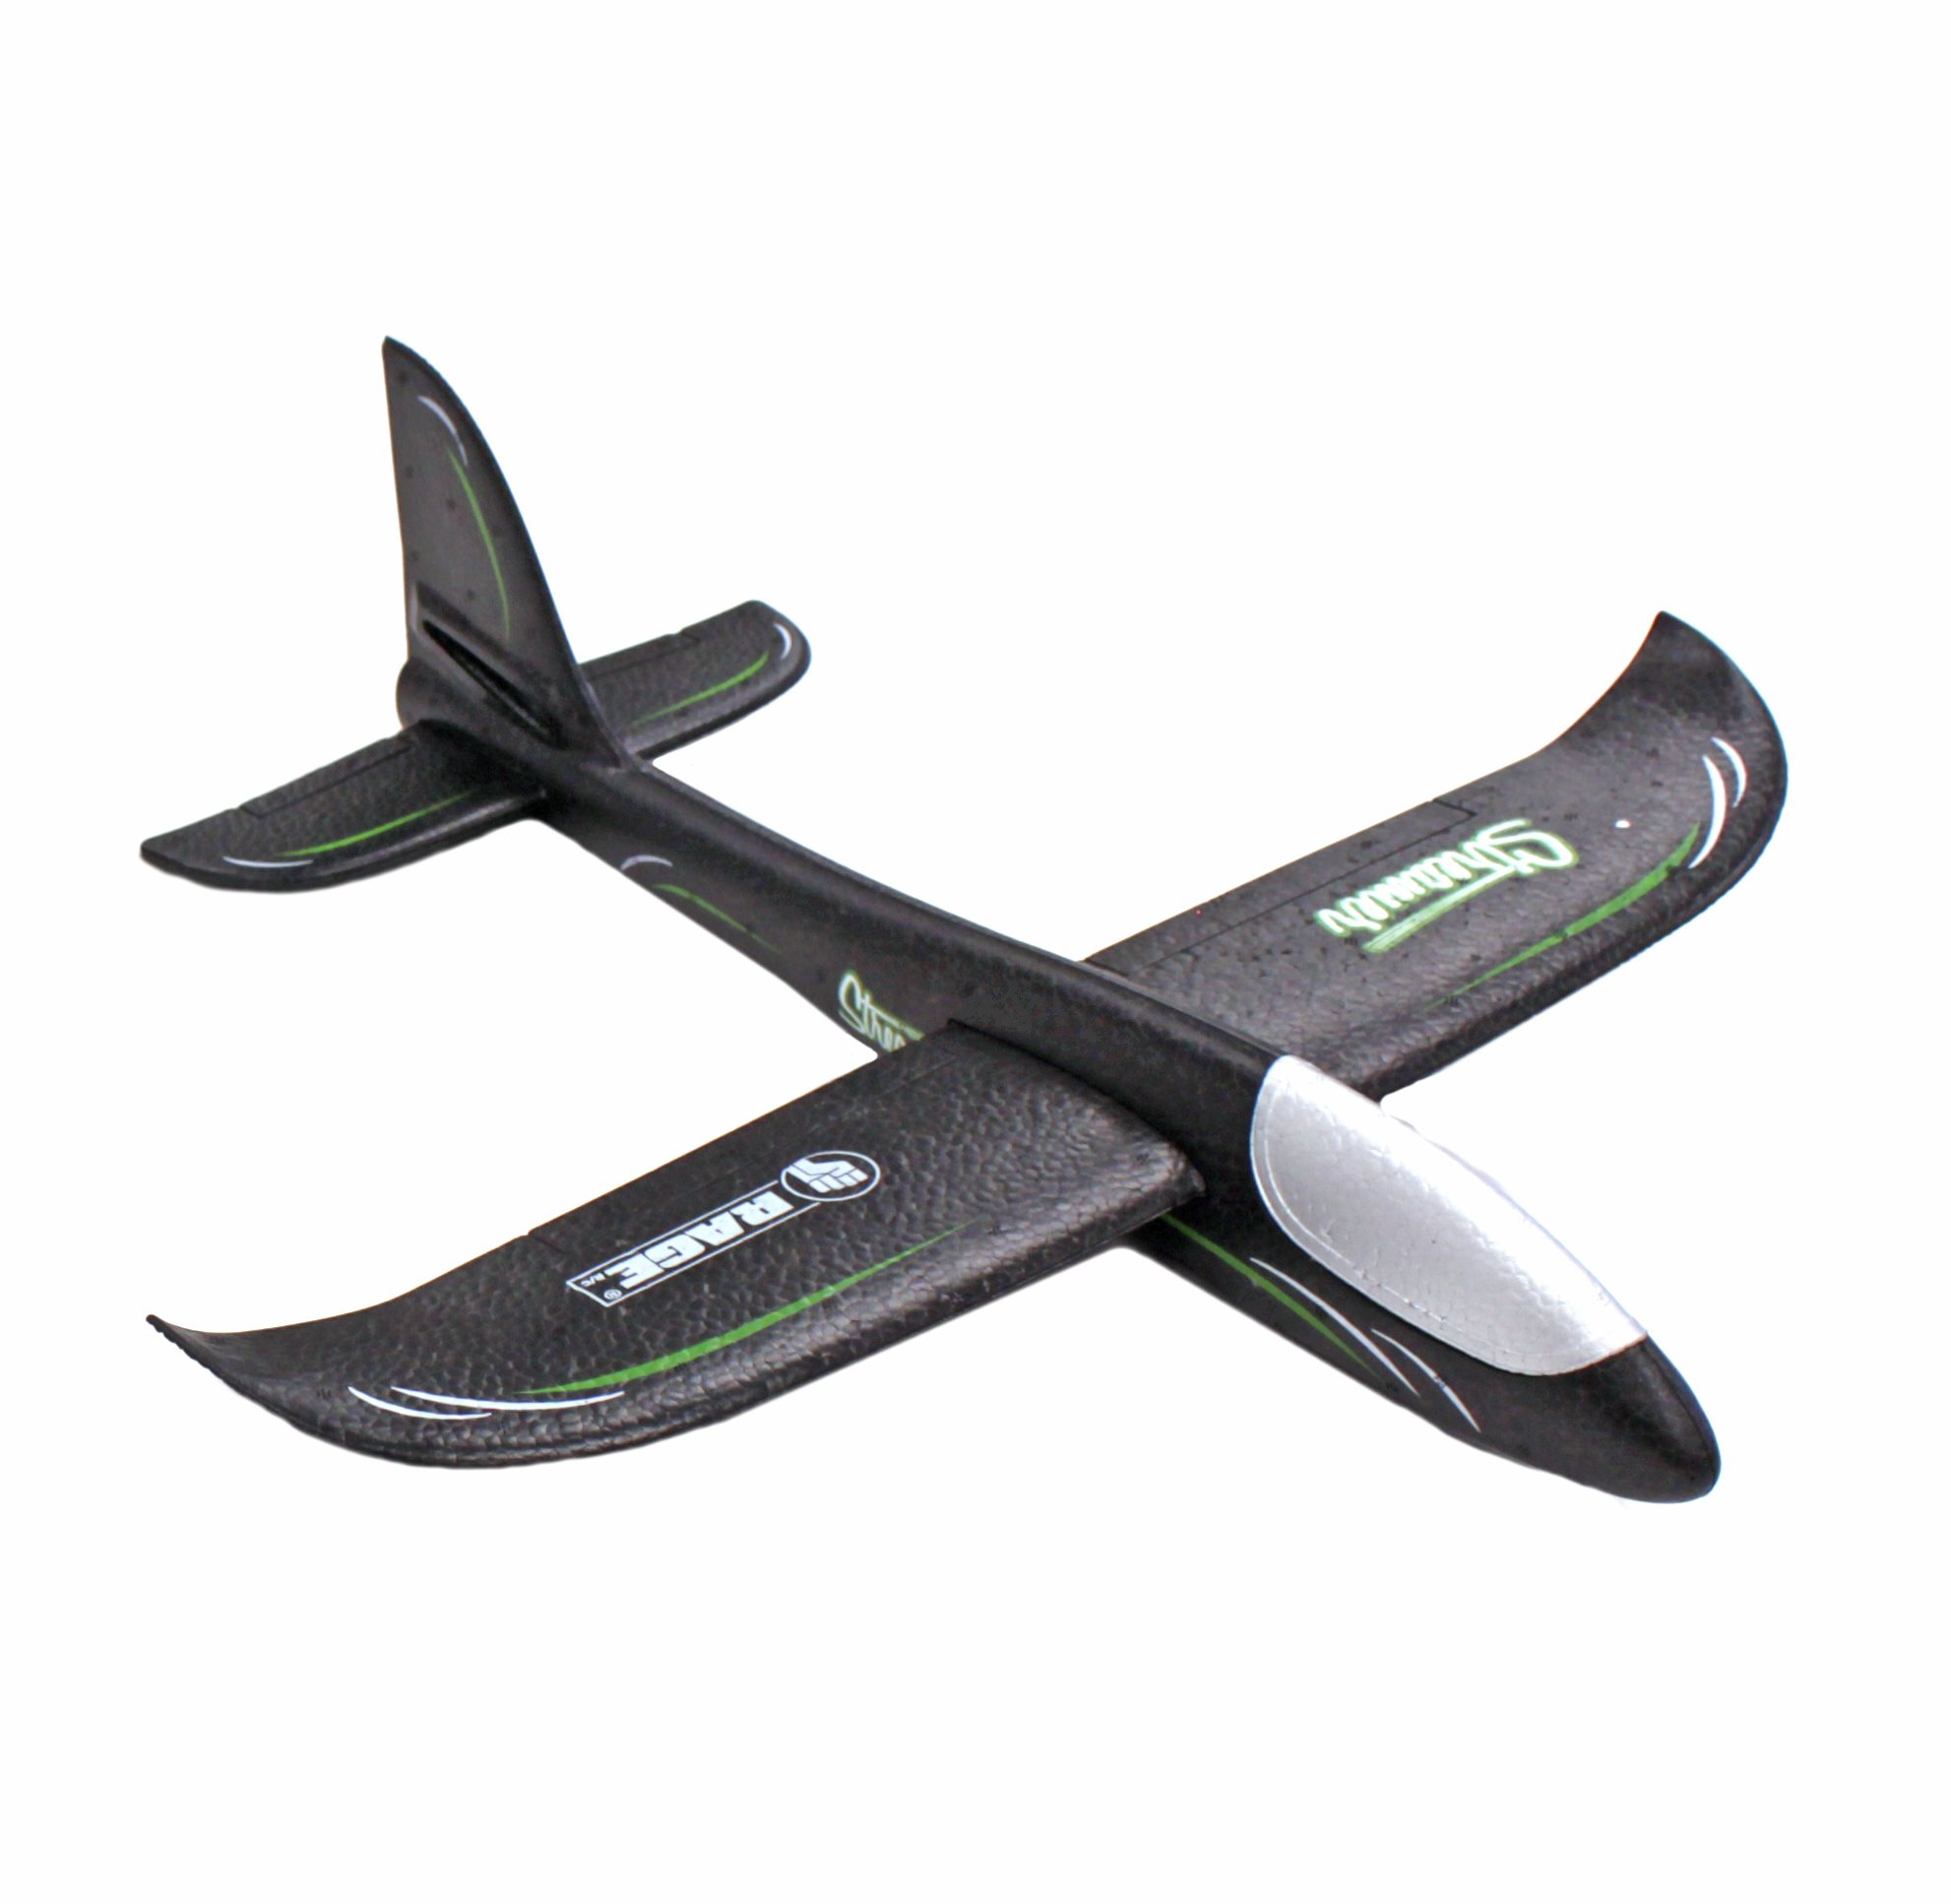 Rage RC Streamer Hand Launch Glider, Black